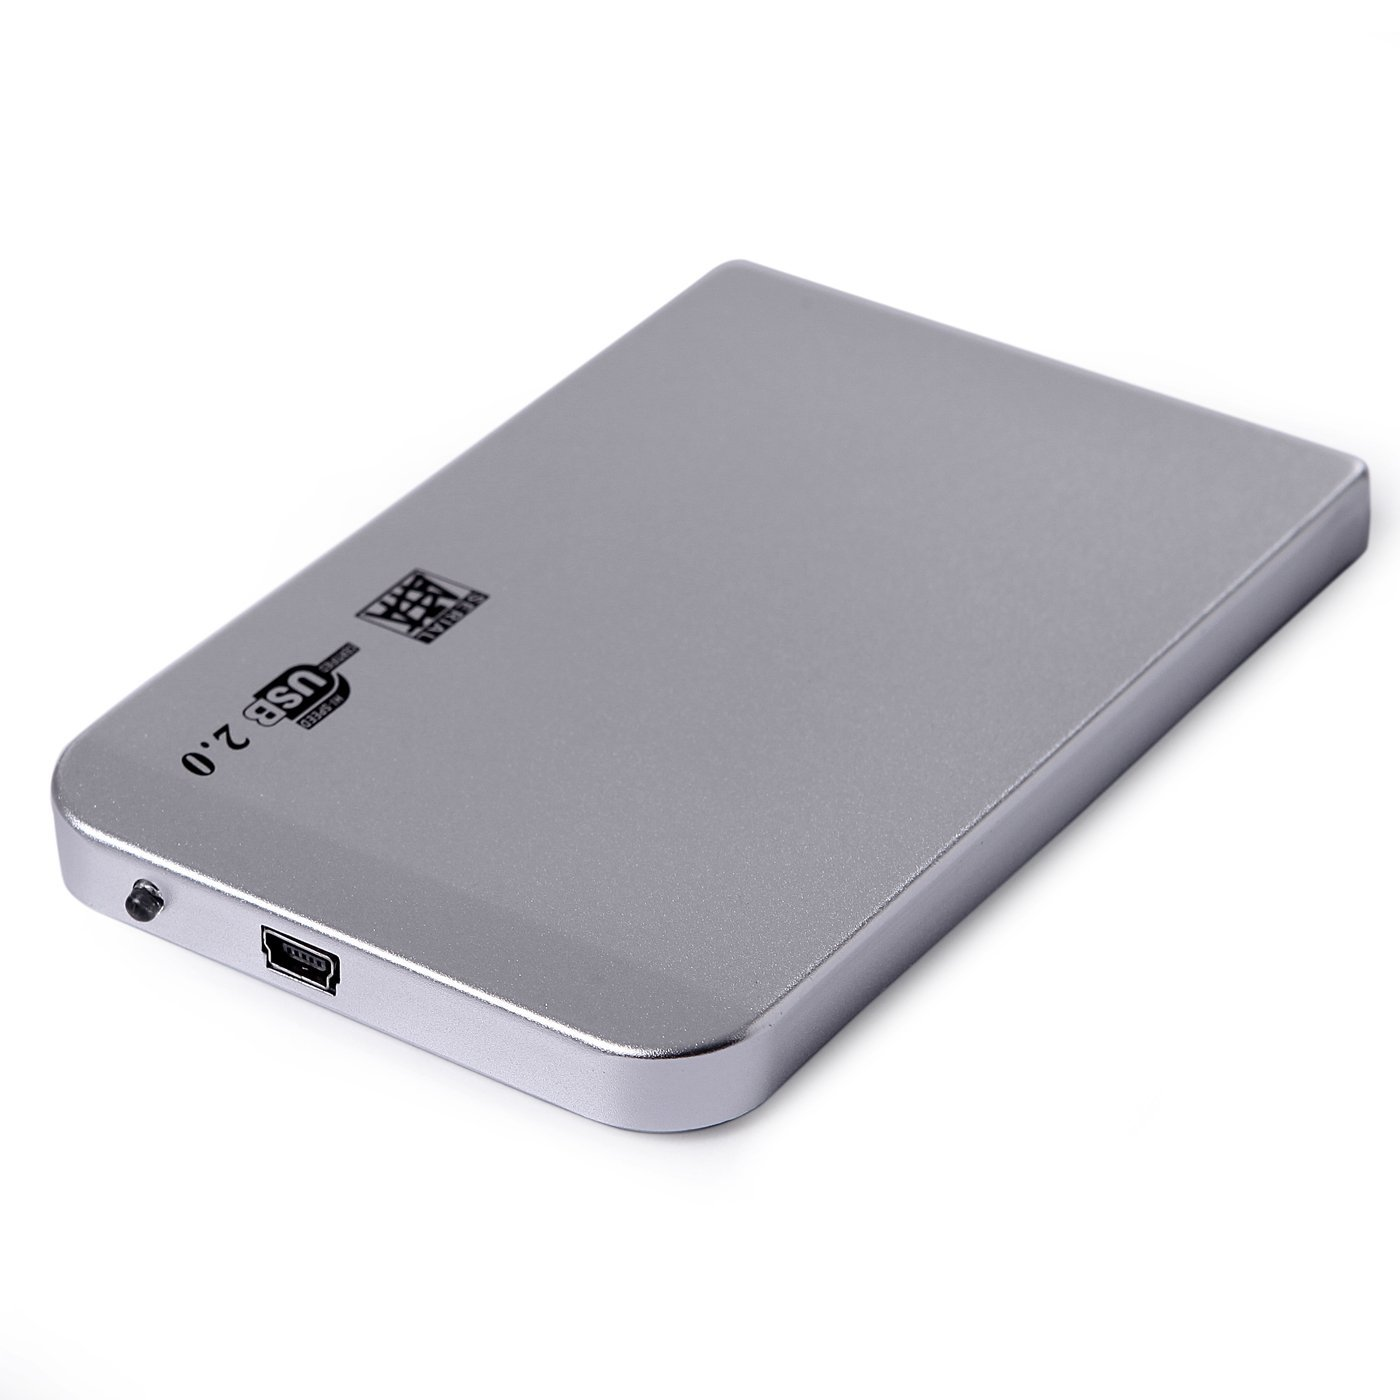 SATA External Hard Disk Drive (HDD) 2.5 Metallic Enclosure ...